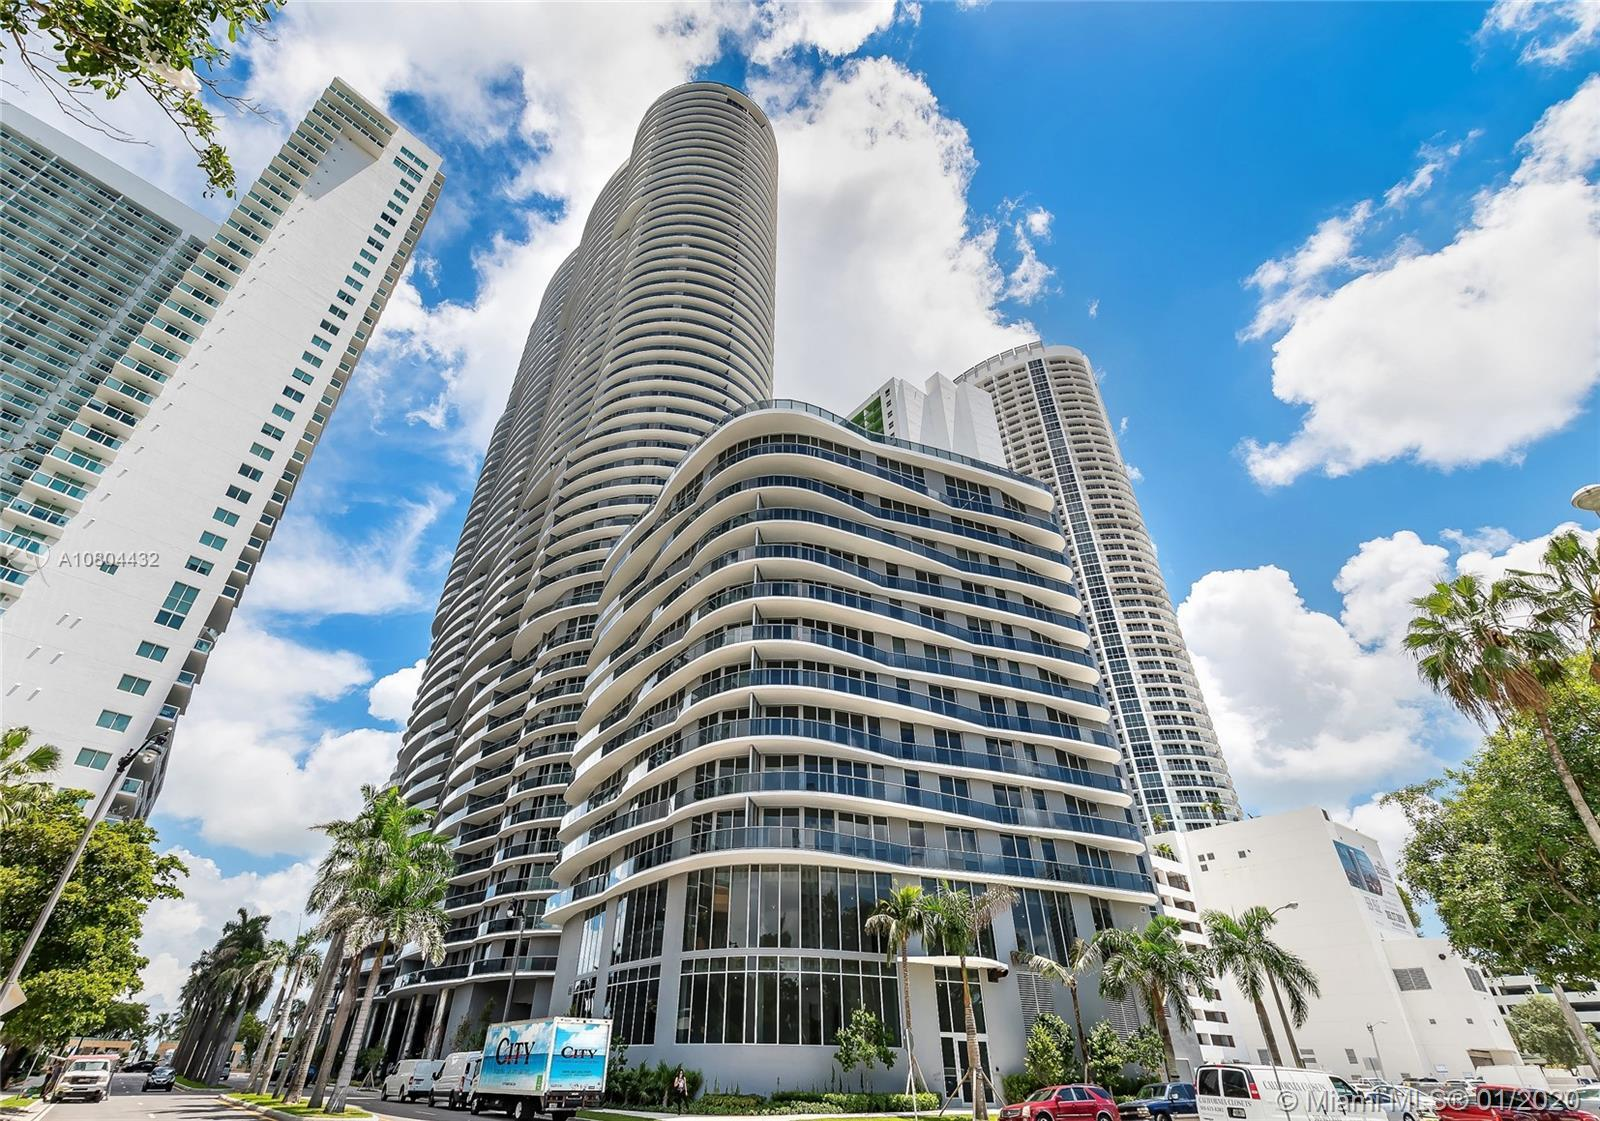 BRAND NEW AND FABULOUS 2 BED / 2.5 BATH CONDO AT ARIA ON THE BAY WITH A VERY SPACIOUS BALCONY AND AW